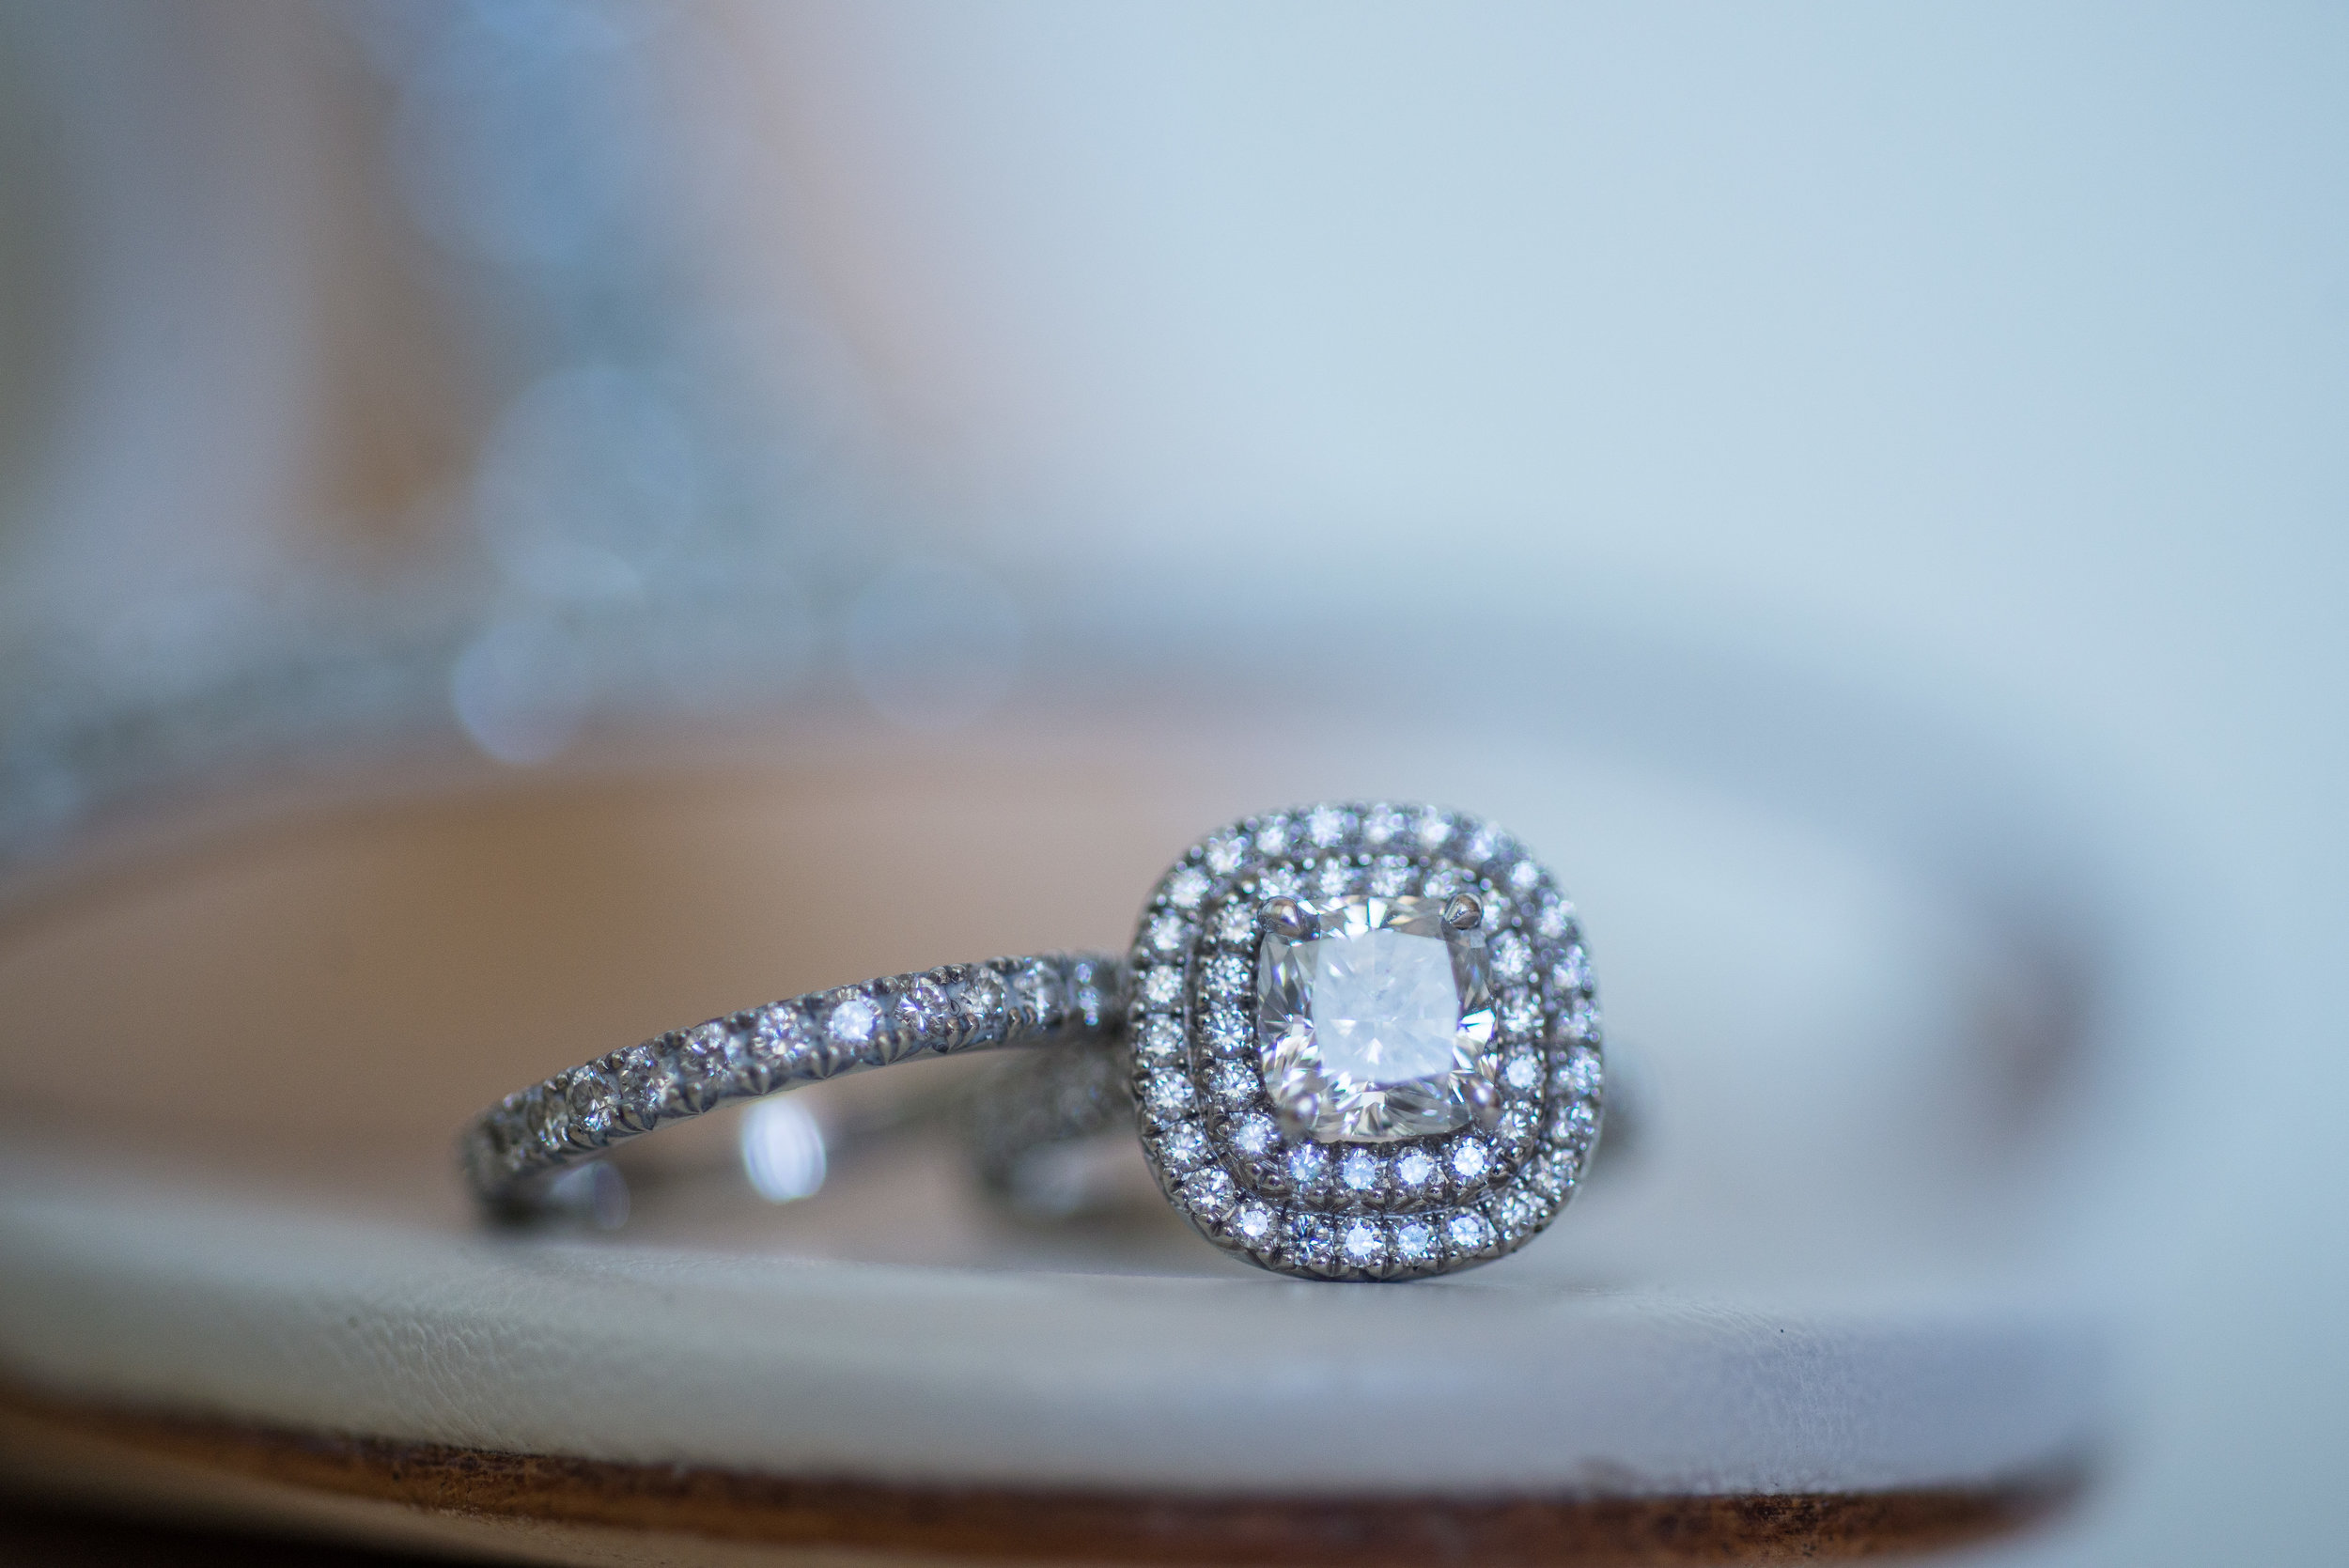 Wedding ring detail captured from profesional wedding photographer Gvphotographer